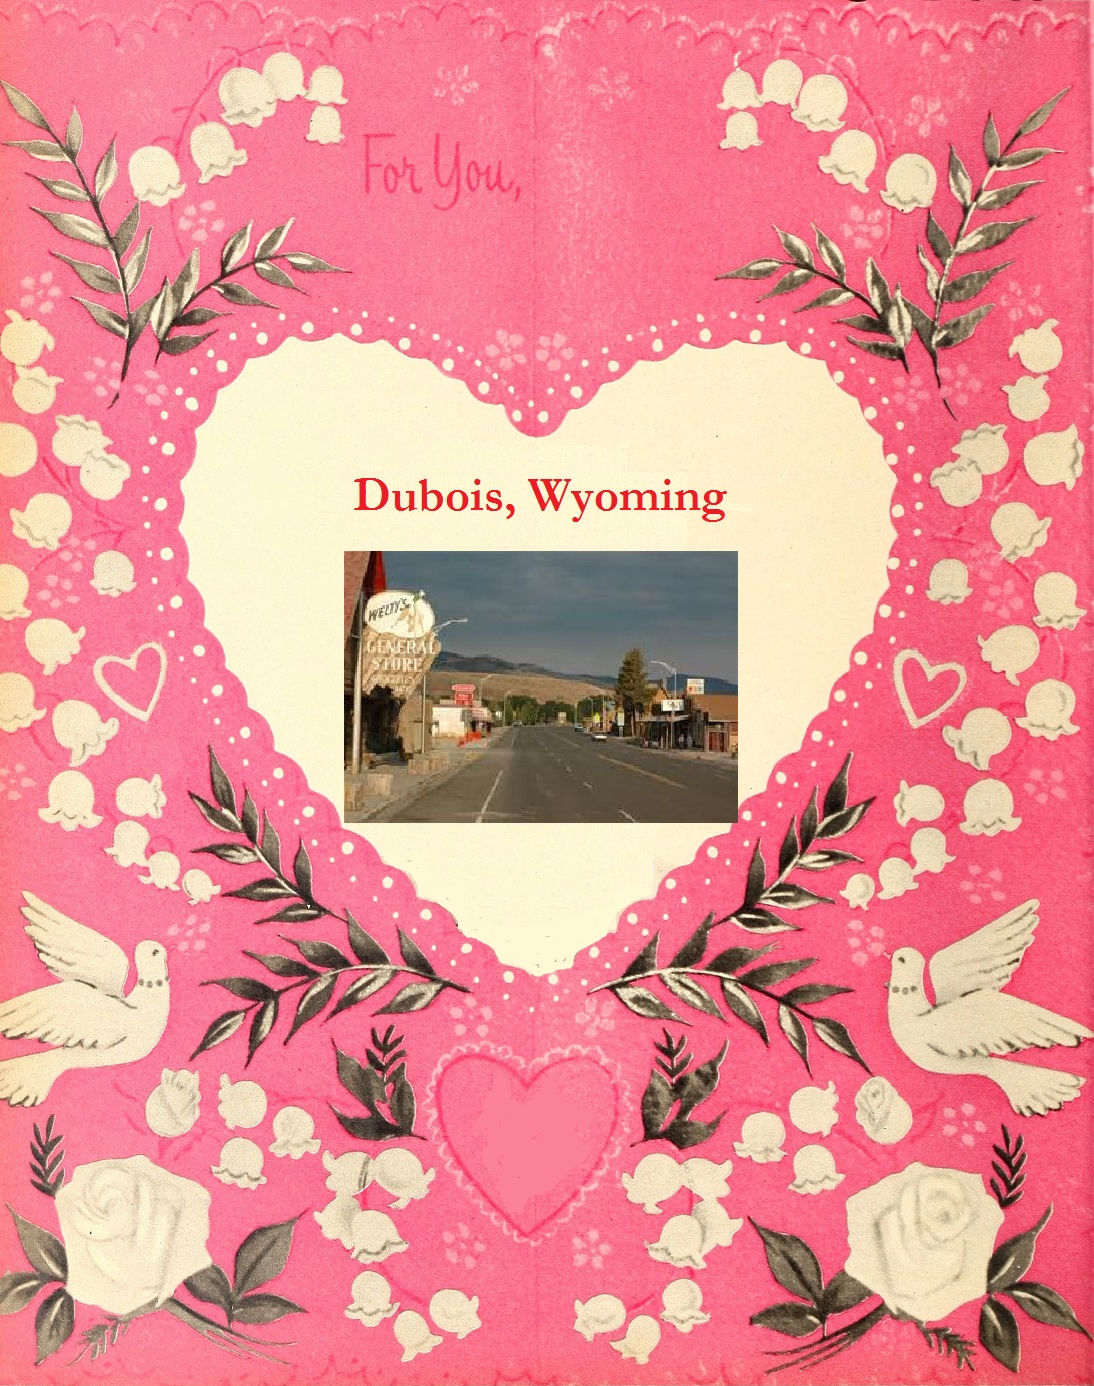 14 Reasons to Love Dubois, Wyoming